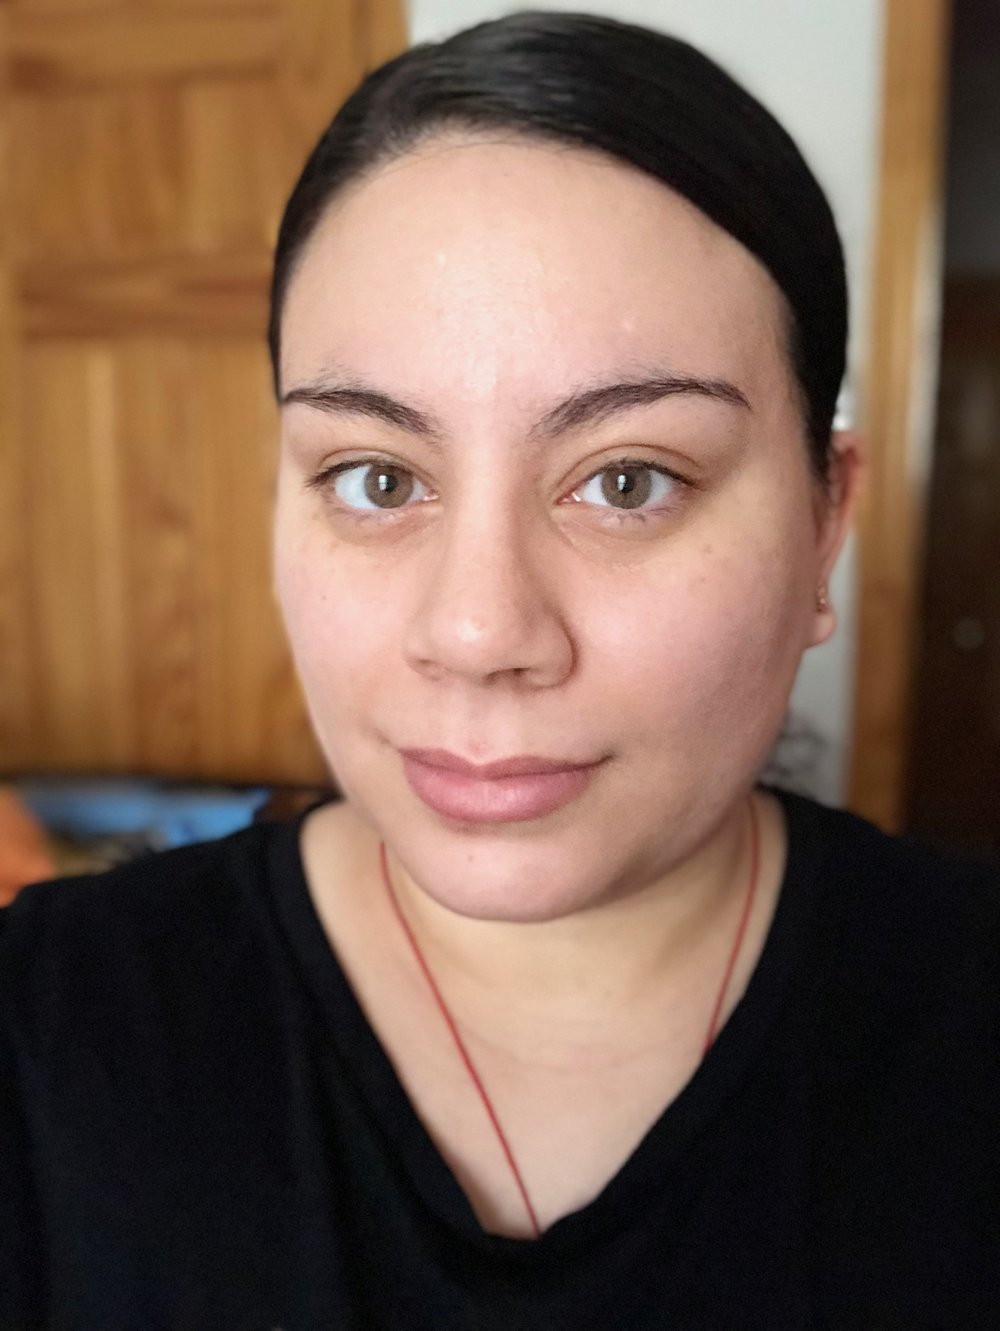 My face without makeup. Taken on the iPhone X.